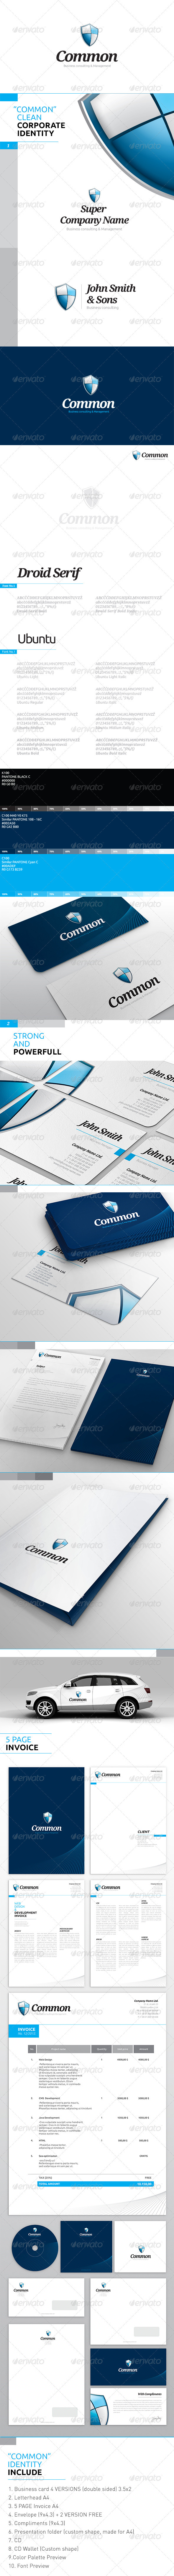 """MASTER package """"Shield"""" - Corporate ID - Corporate Business Cards"""